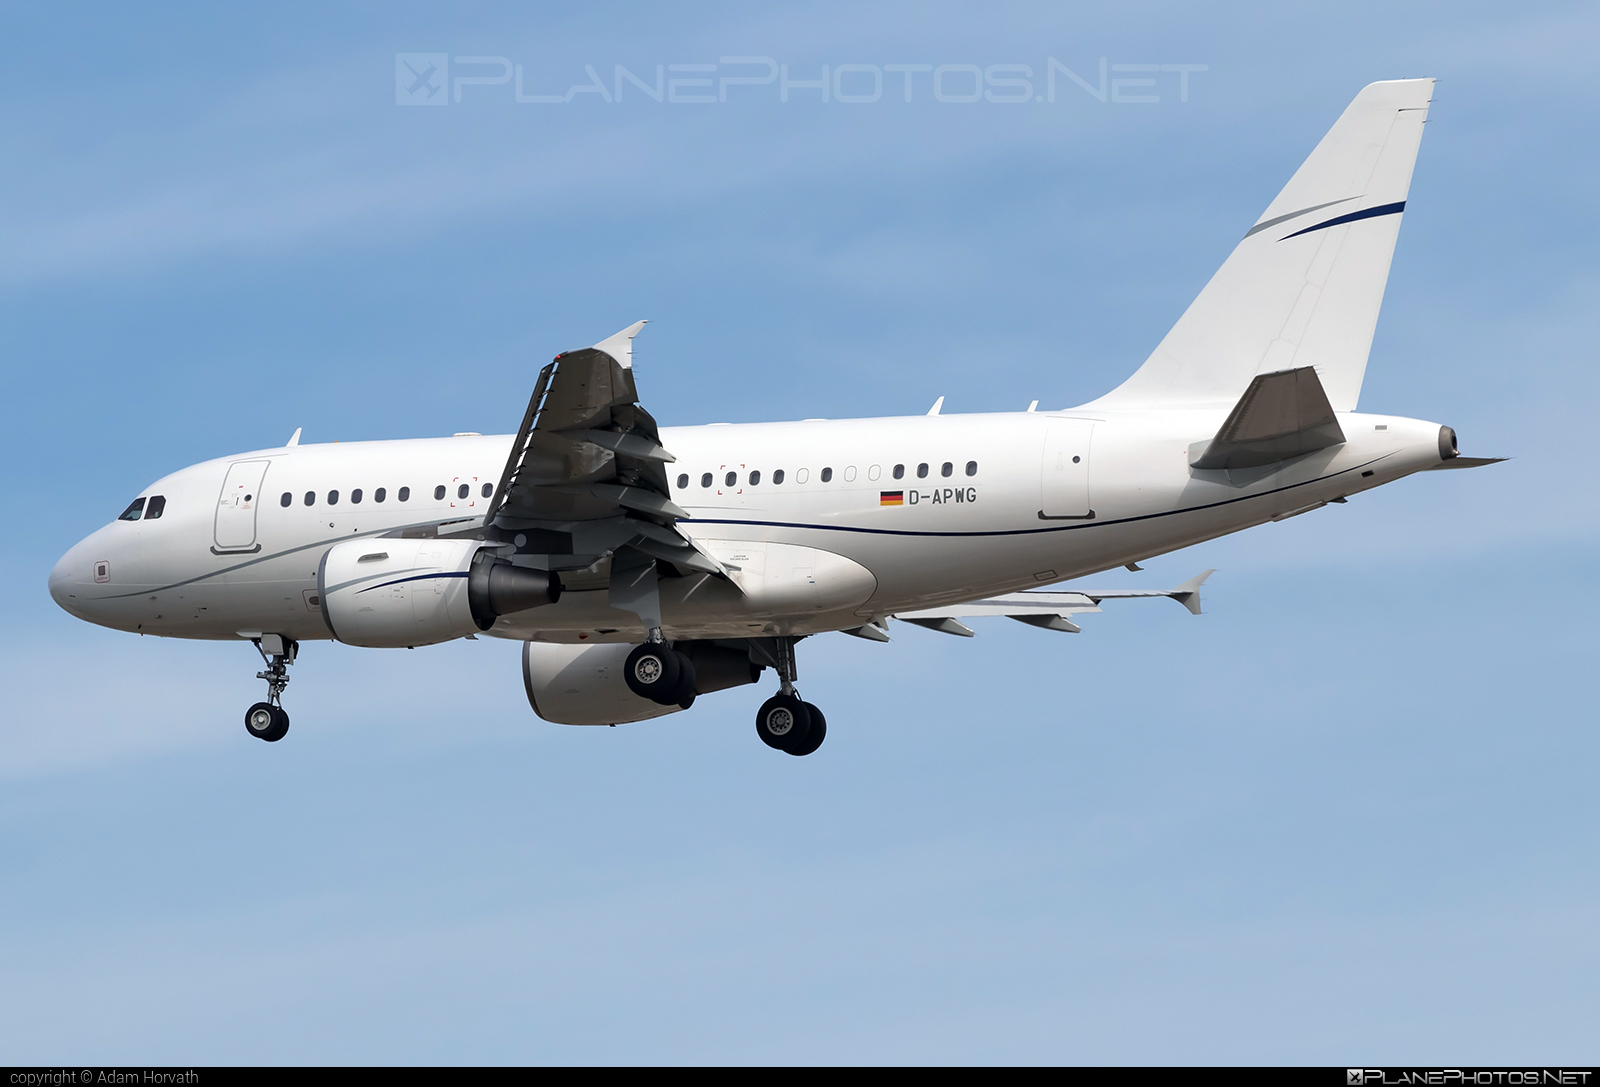 Airbus A318-112 - D-APWG operated by K5-Aviation #a318 #a320family #airbus #airbus318 #k5aviation